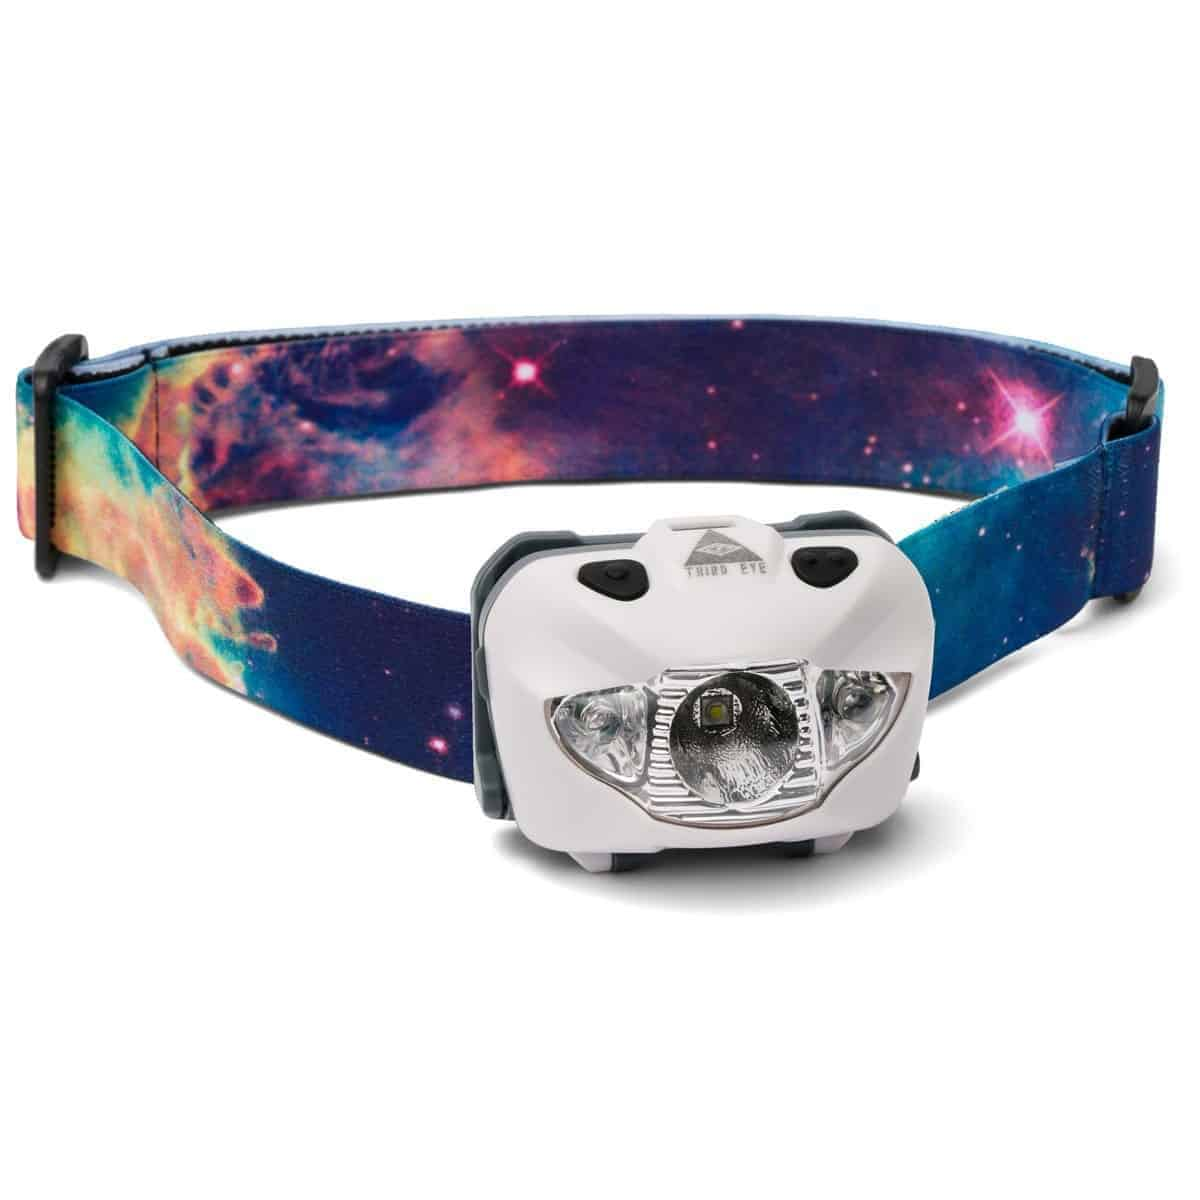 Third Eye Headlamps TE14 - Galaxy - Hvid